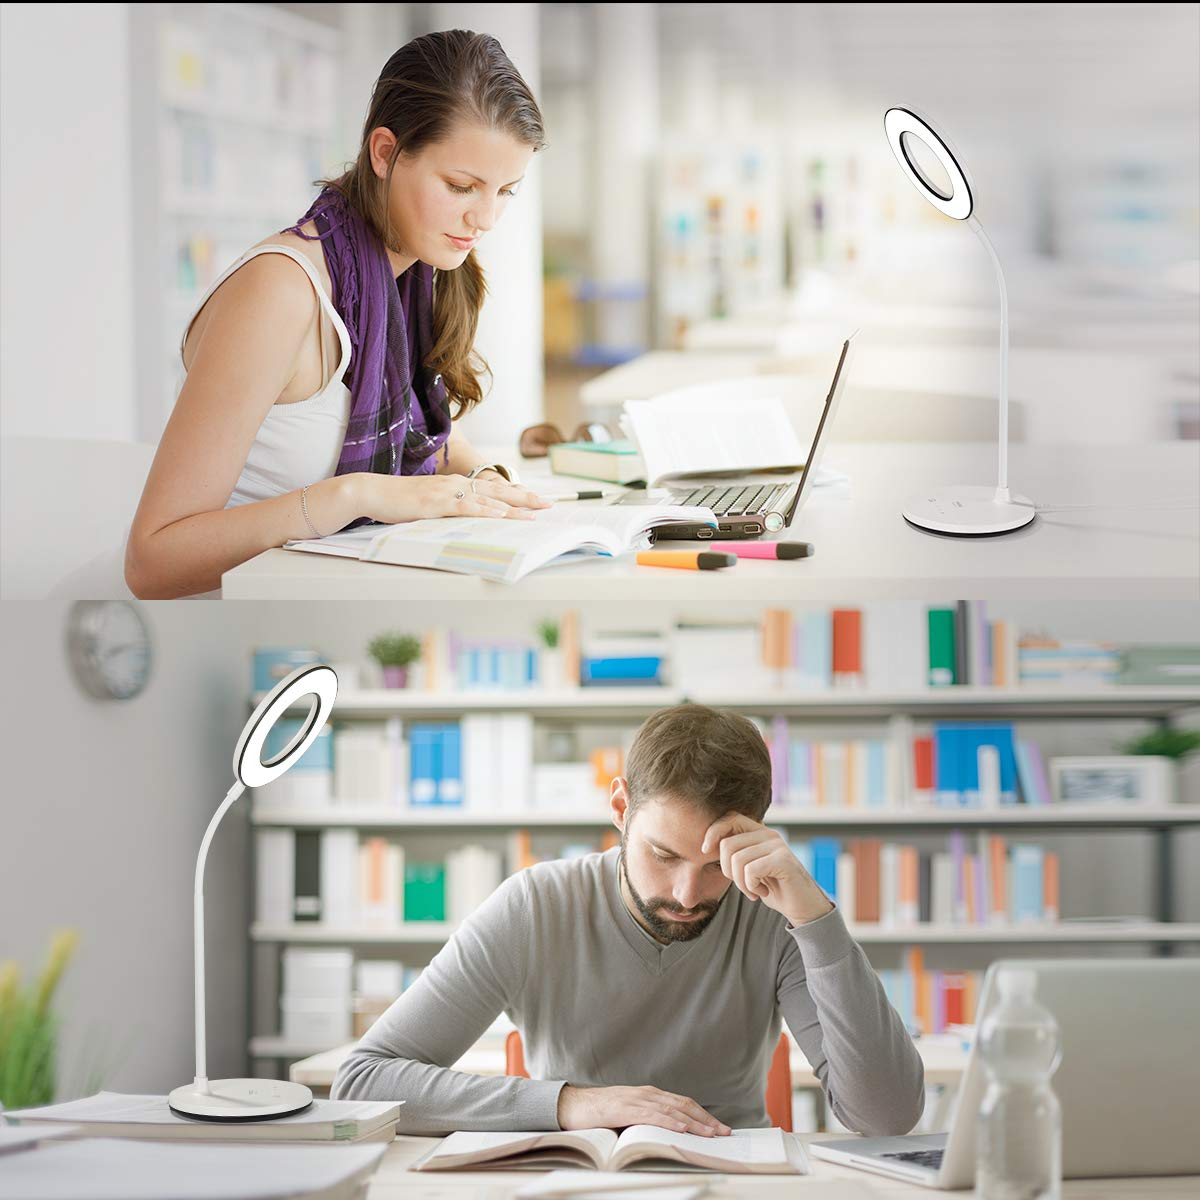 Miady LED Desk Lamp Eye-Caring Table Lamp, 3 Color Modes with 4 Levels of Brightness, Dimmable Office Lamp with Adapter, Touch Control Sensitive, 360° Flexible by Miady (Image #7)